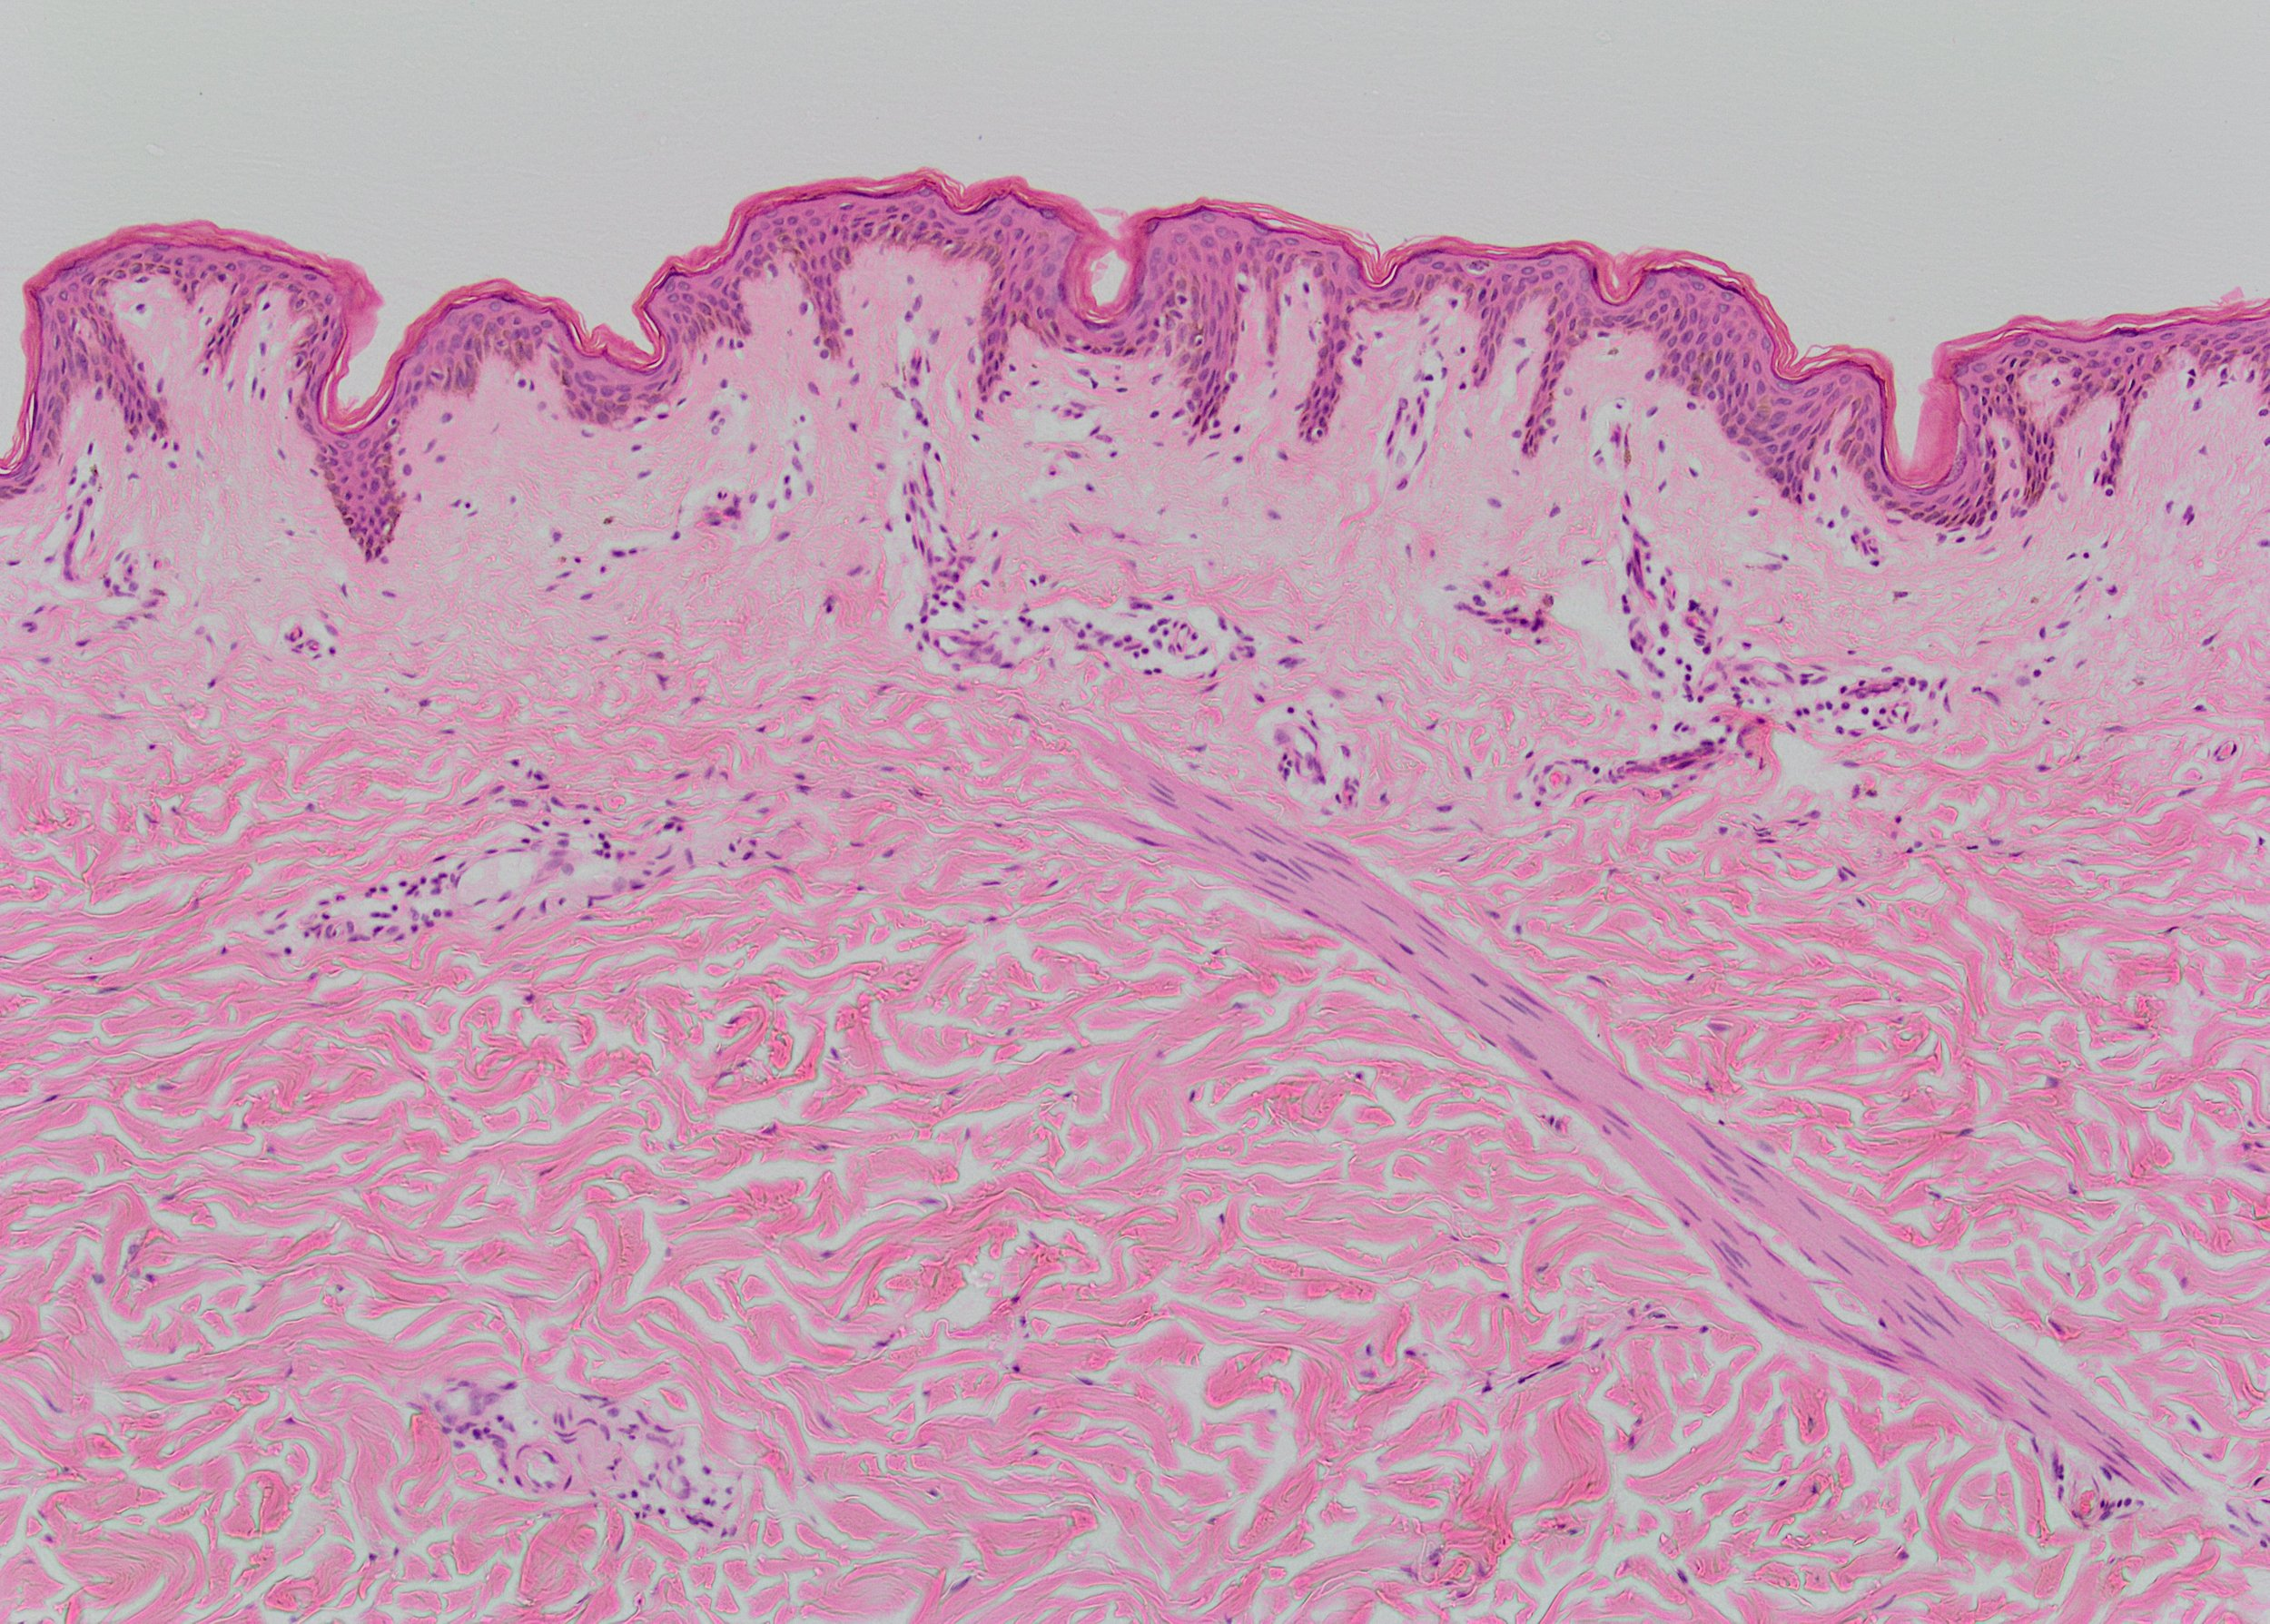 Figure 1:  Haematoxylin and Eosin (H and E) stain of normal skin as control. There is a clear distinction between the dermis and epidermis. The epidermis shows keratin flaking from the surface. The dermo-epideroid junction is clearly defined and there are healthy rete pegs separating the papillary and reticular dermis